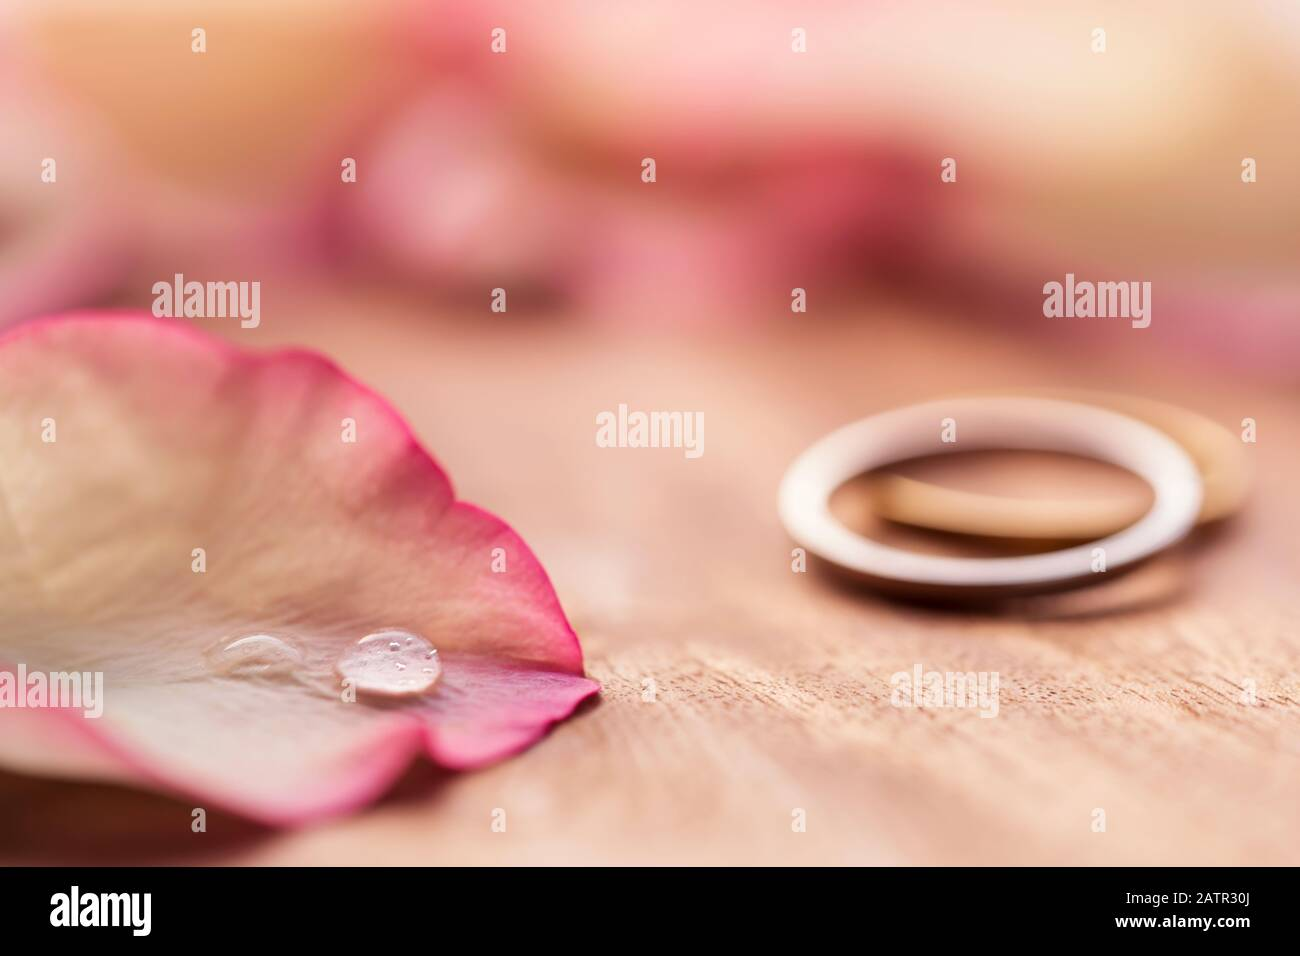 https www alamy com valentines day proposal rings for wedding anniversary engagement background close up of water drop on pink rose petal for invitation card post image342256002 html